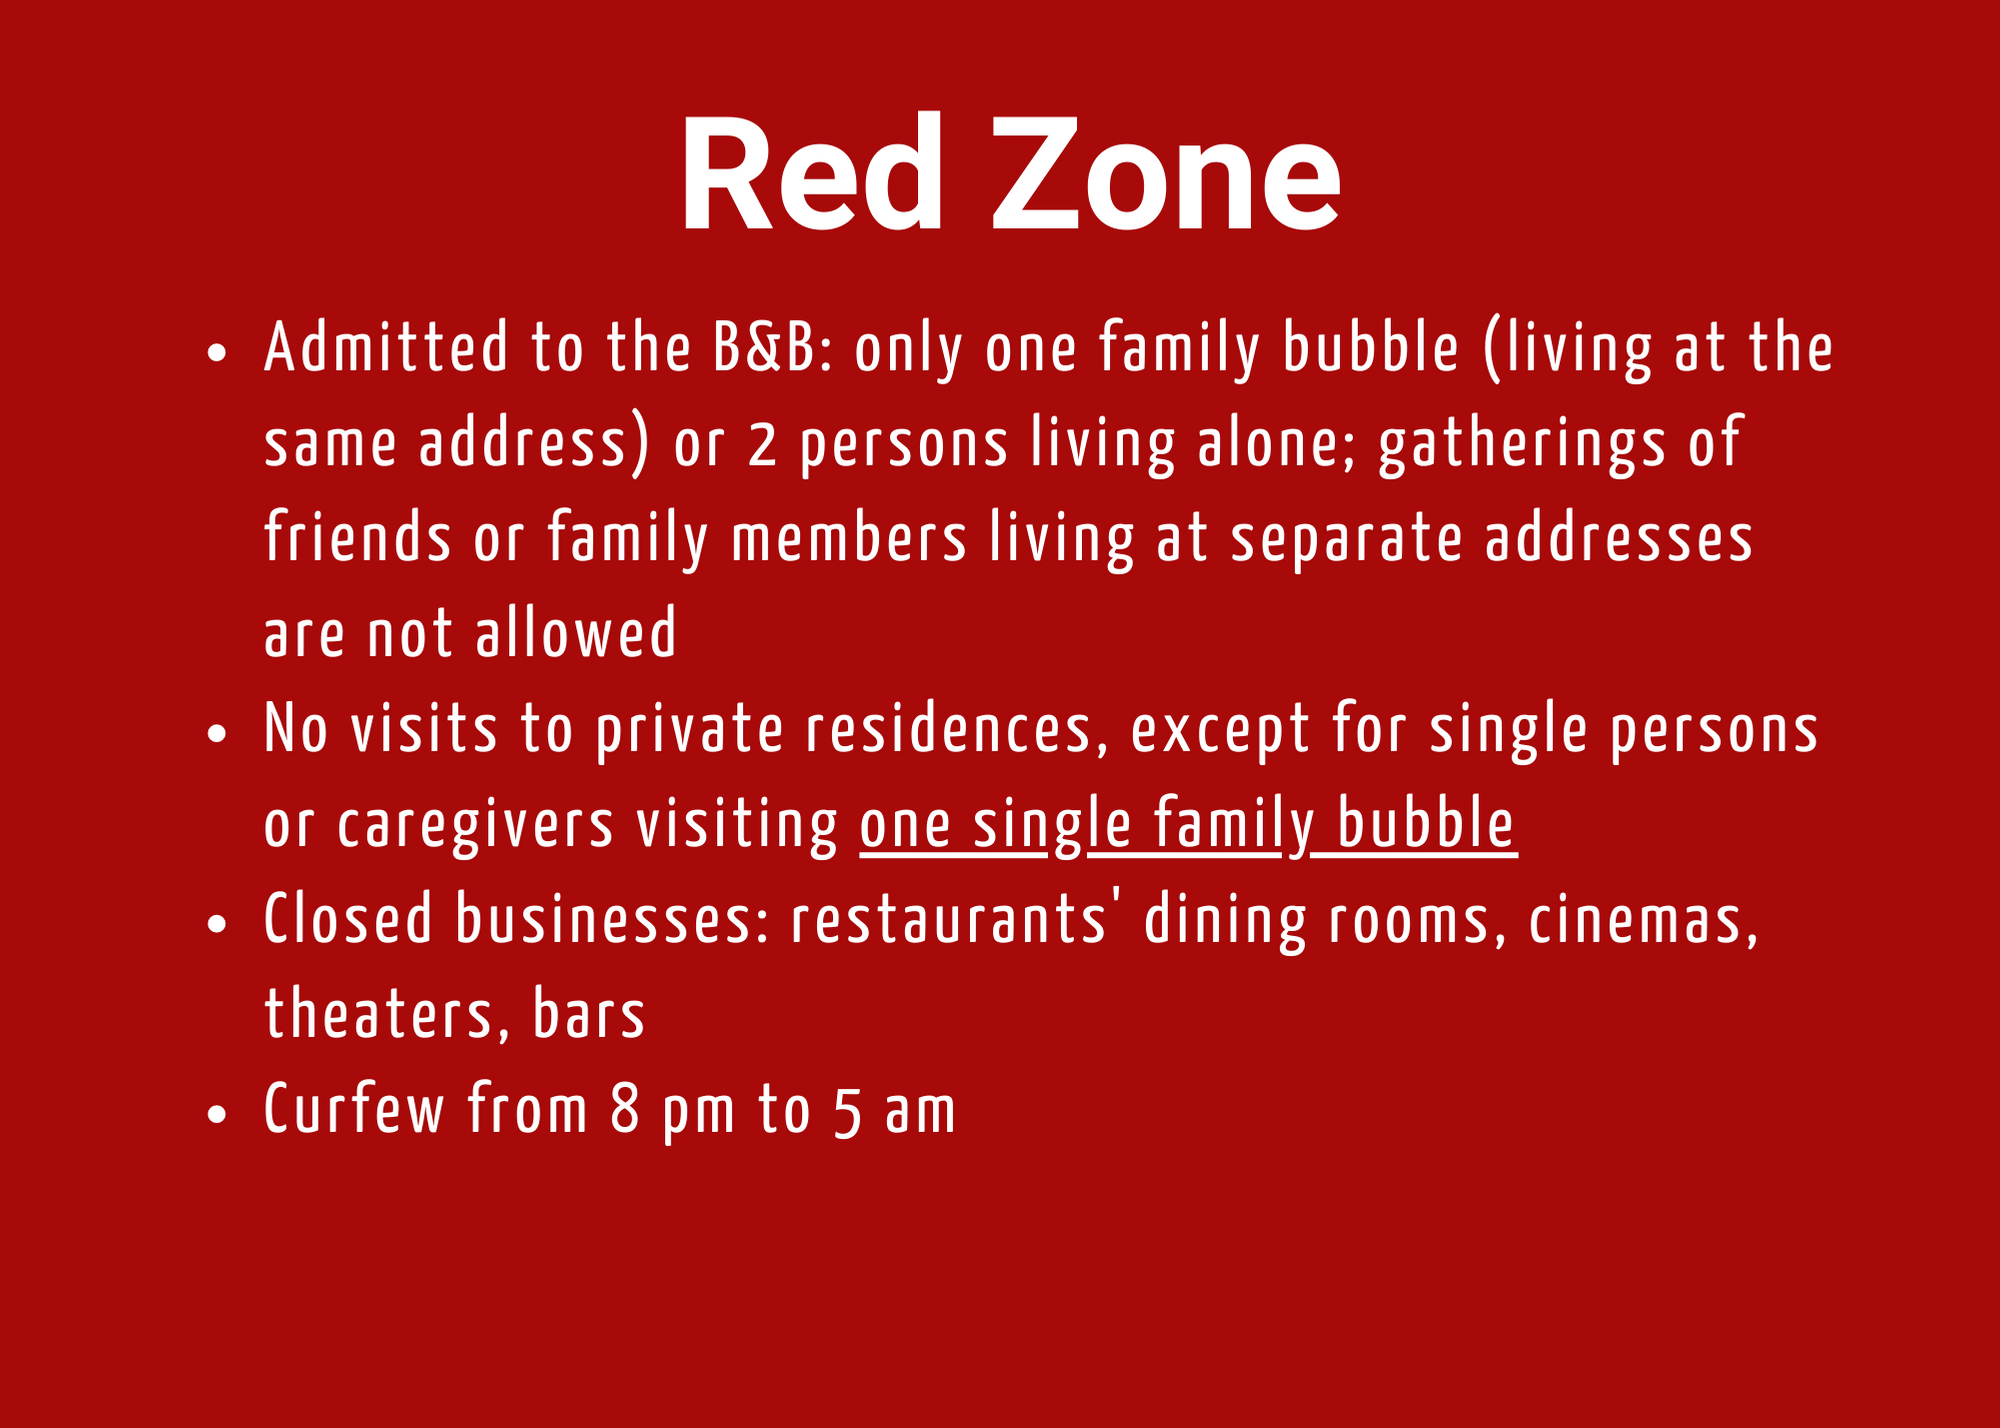 Auberge Tom B&B - Red Zone